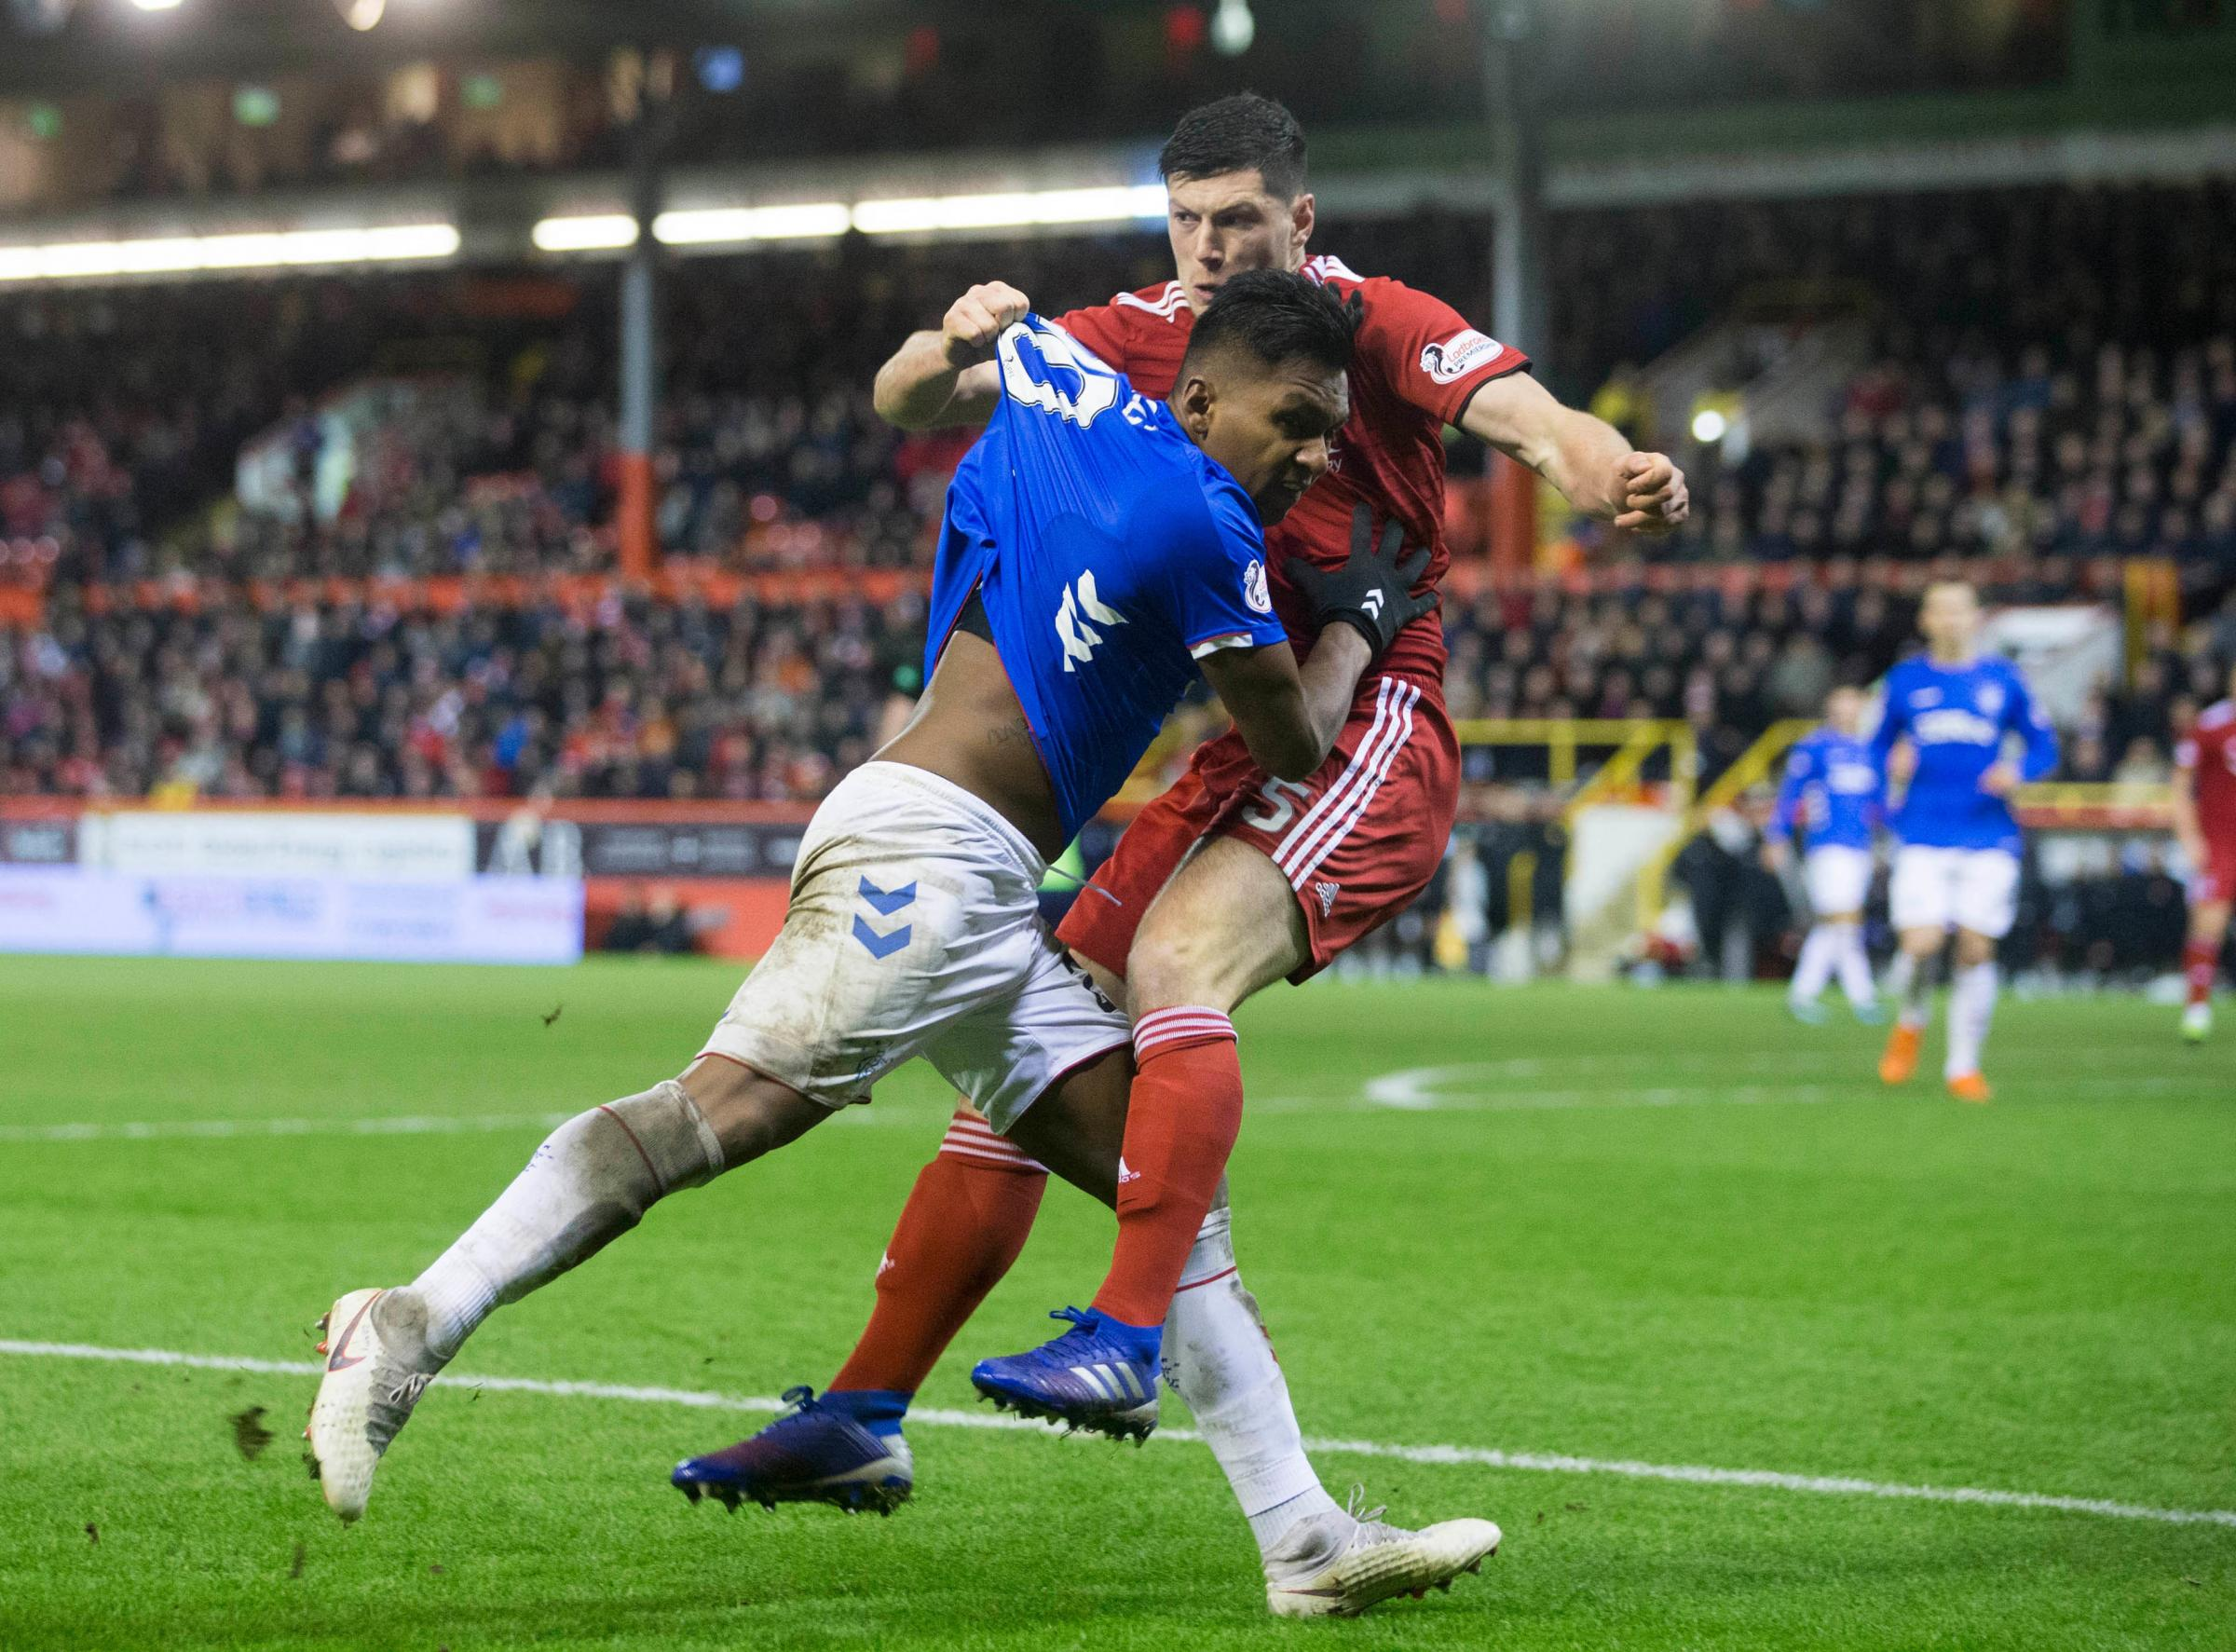 Two charged over 'racist remarks' at Aberdeen v Rangers match